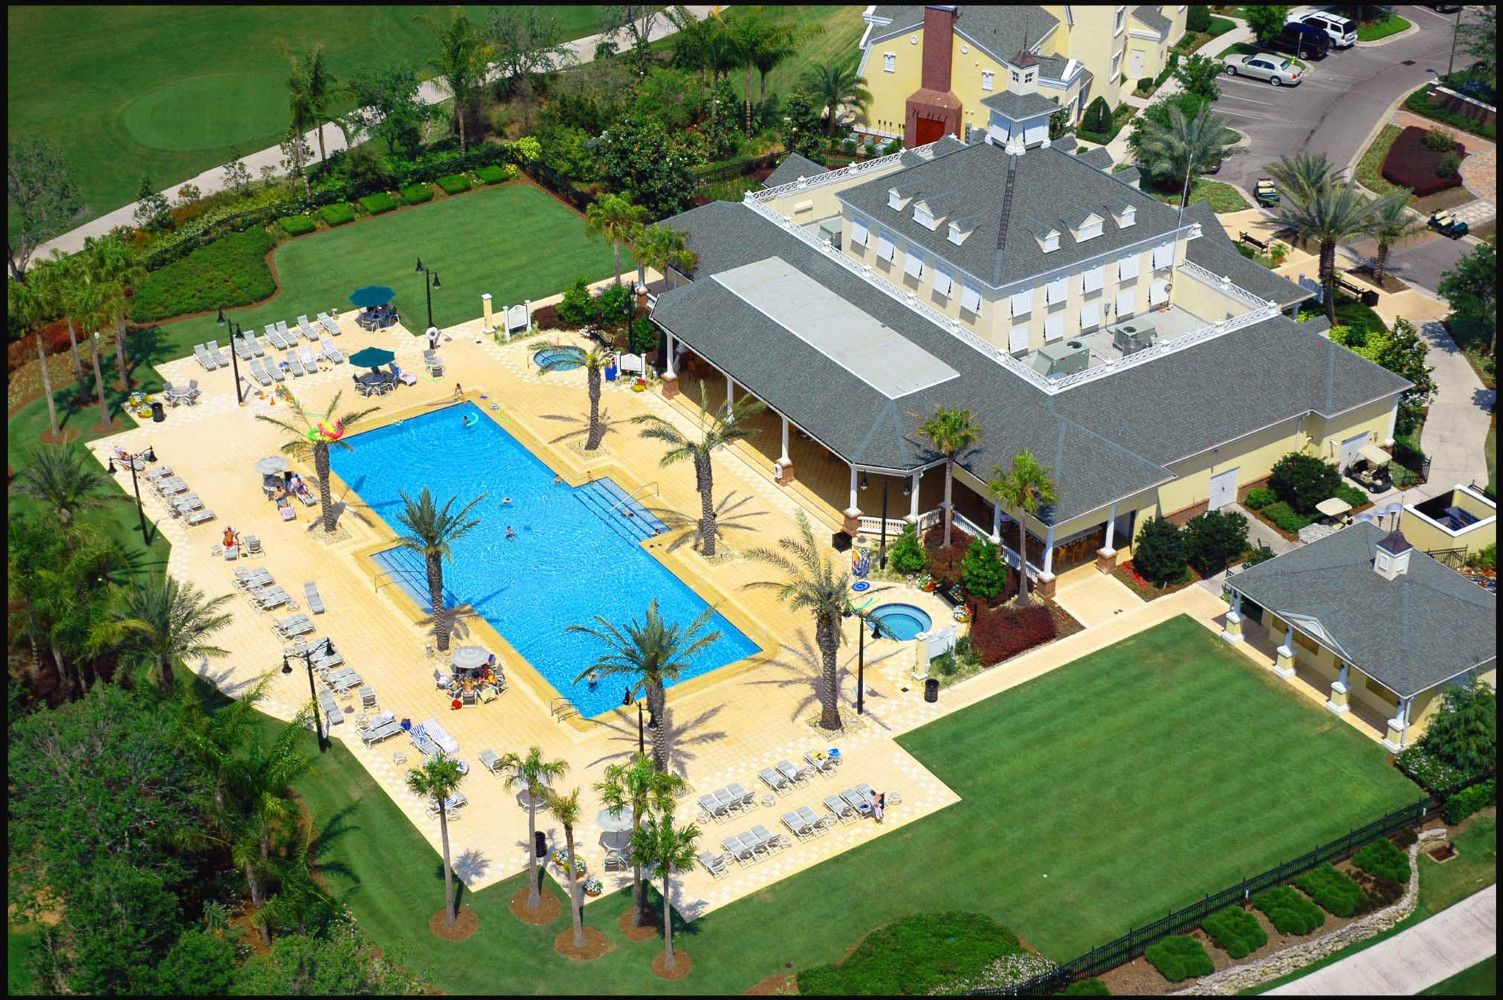 Seven Eagles Clubhouse / Pool overview at Reunion Resort